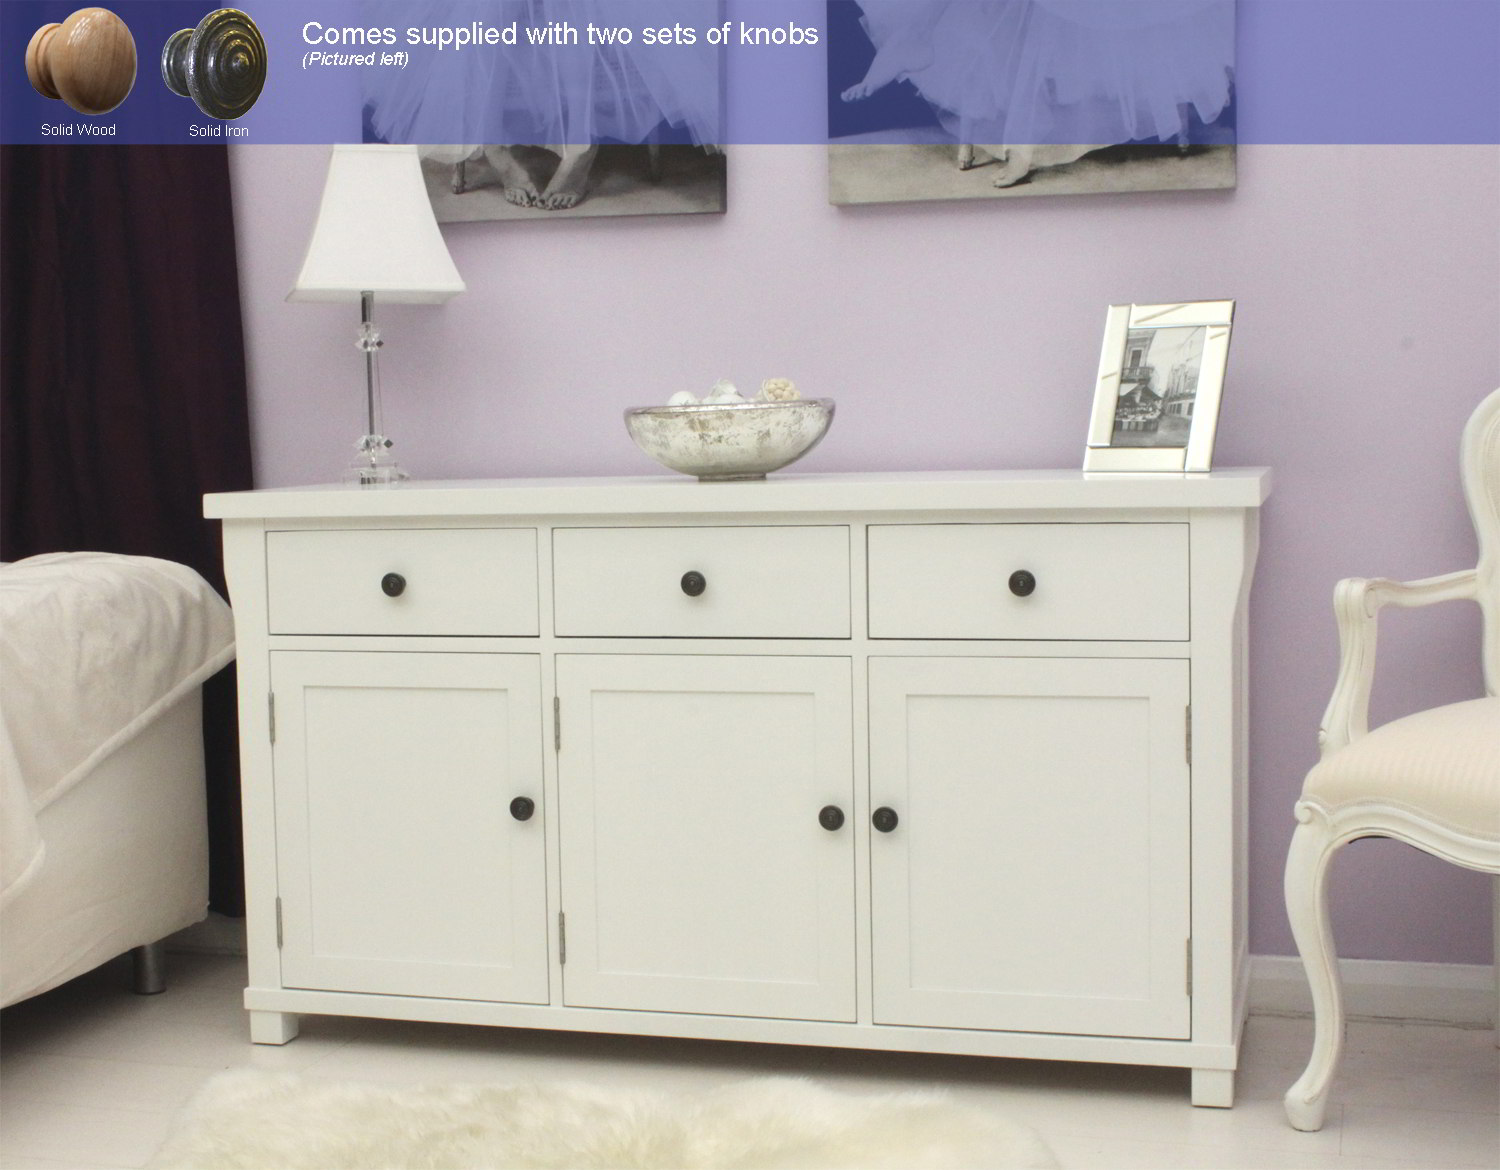 New England White Painted Furniture Large Living Dining Room Sideboard EBay